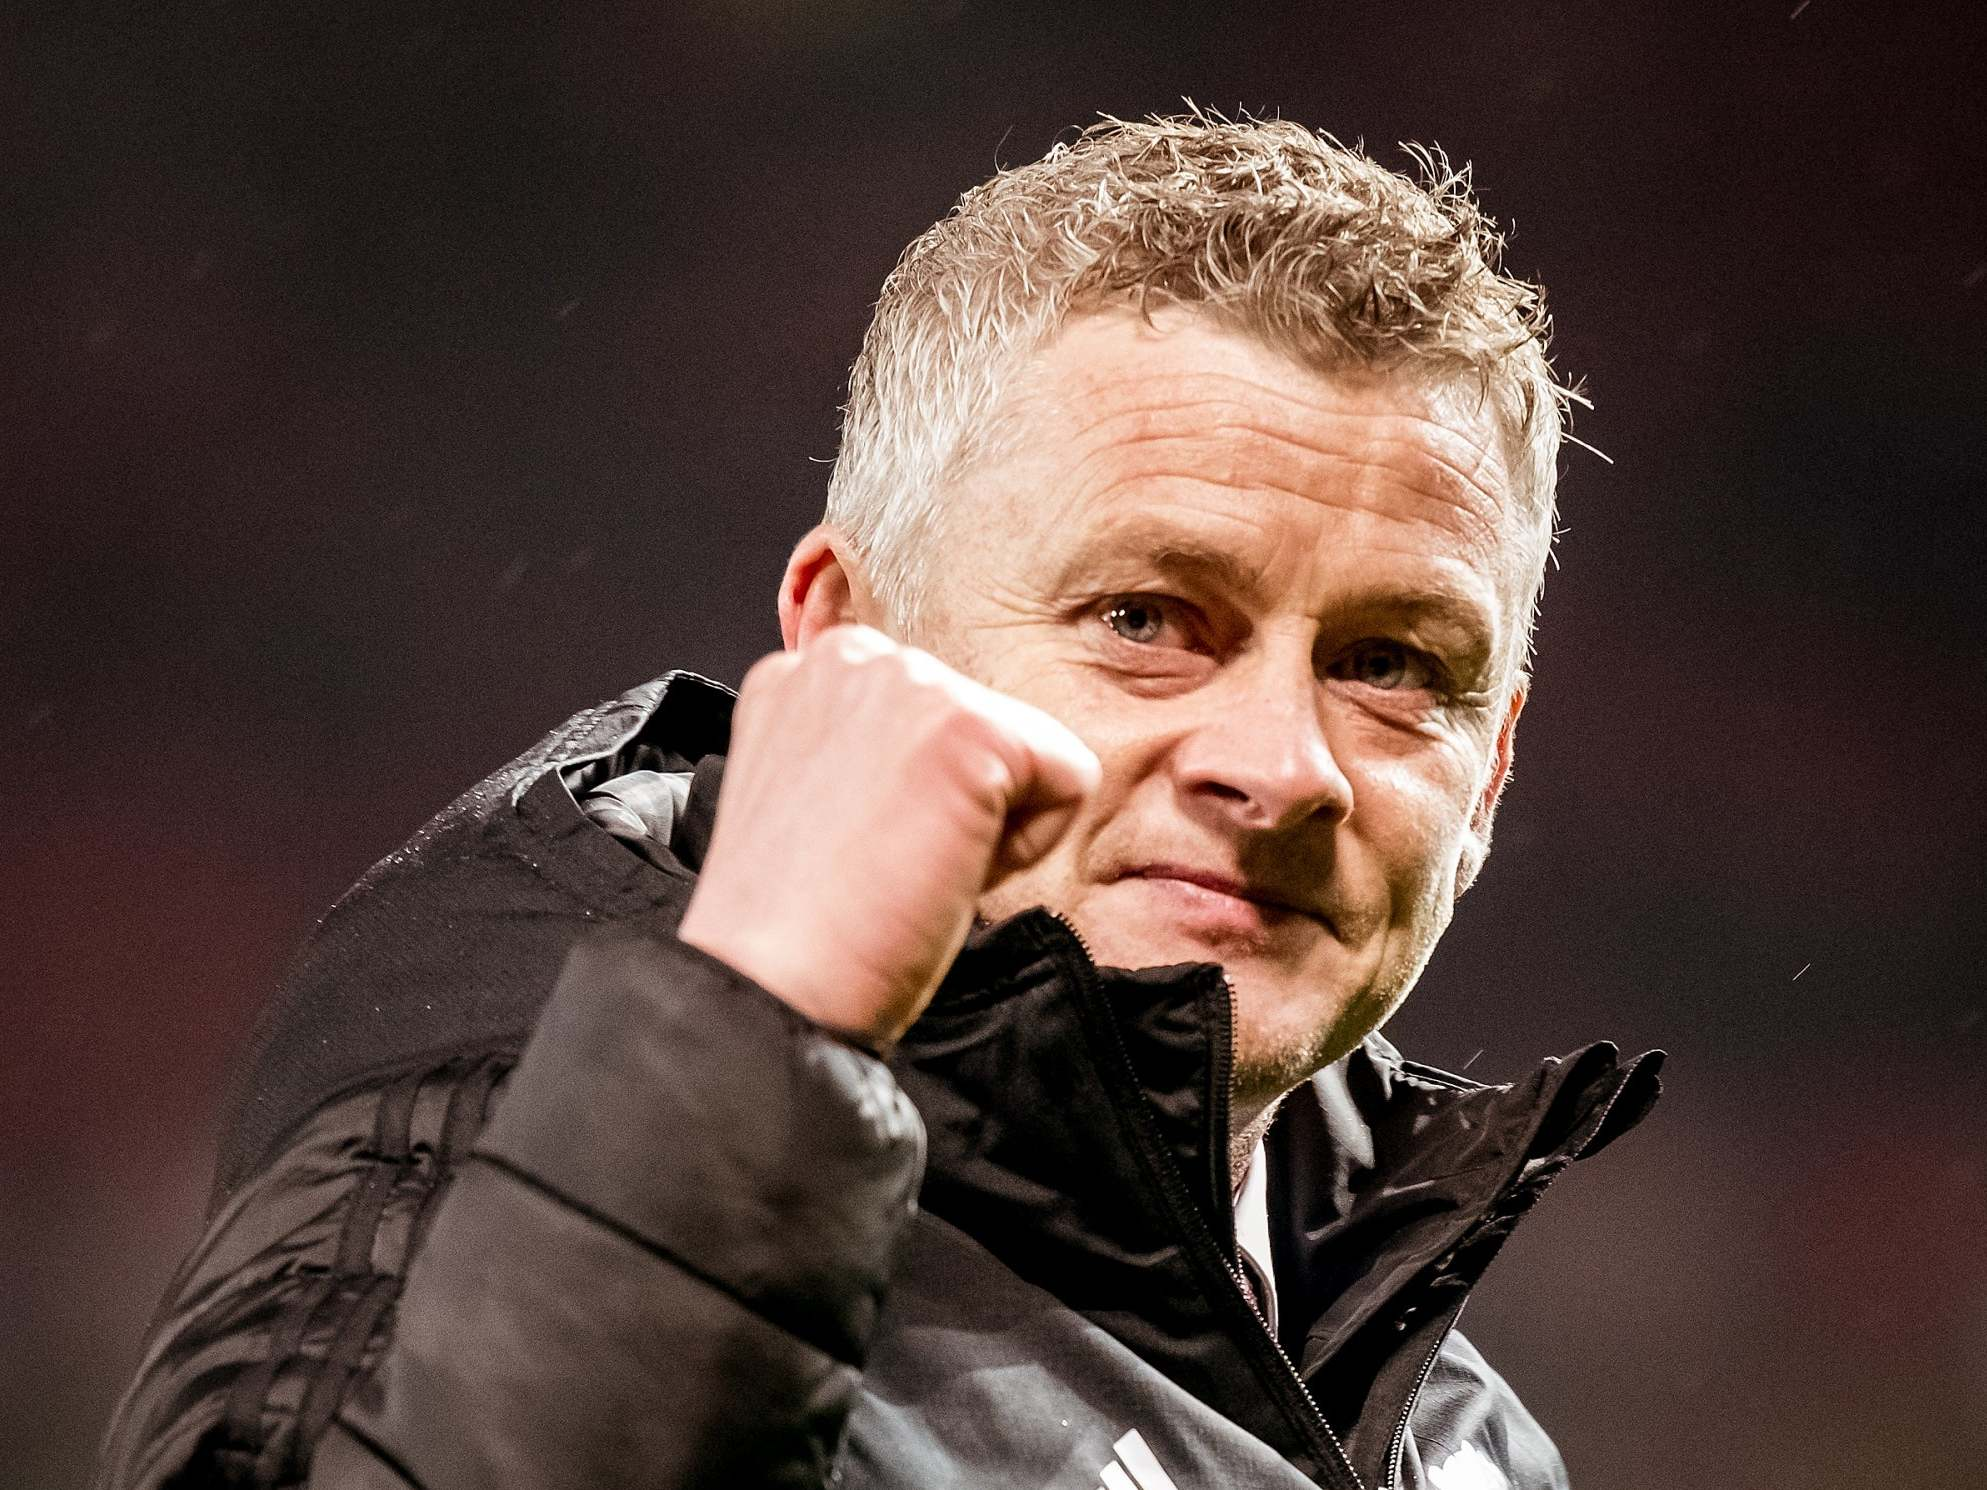 Man City vs Manchester United: Ole Gunnar Solskjaer has alleviated the pressure – but it rarely looks simple